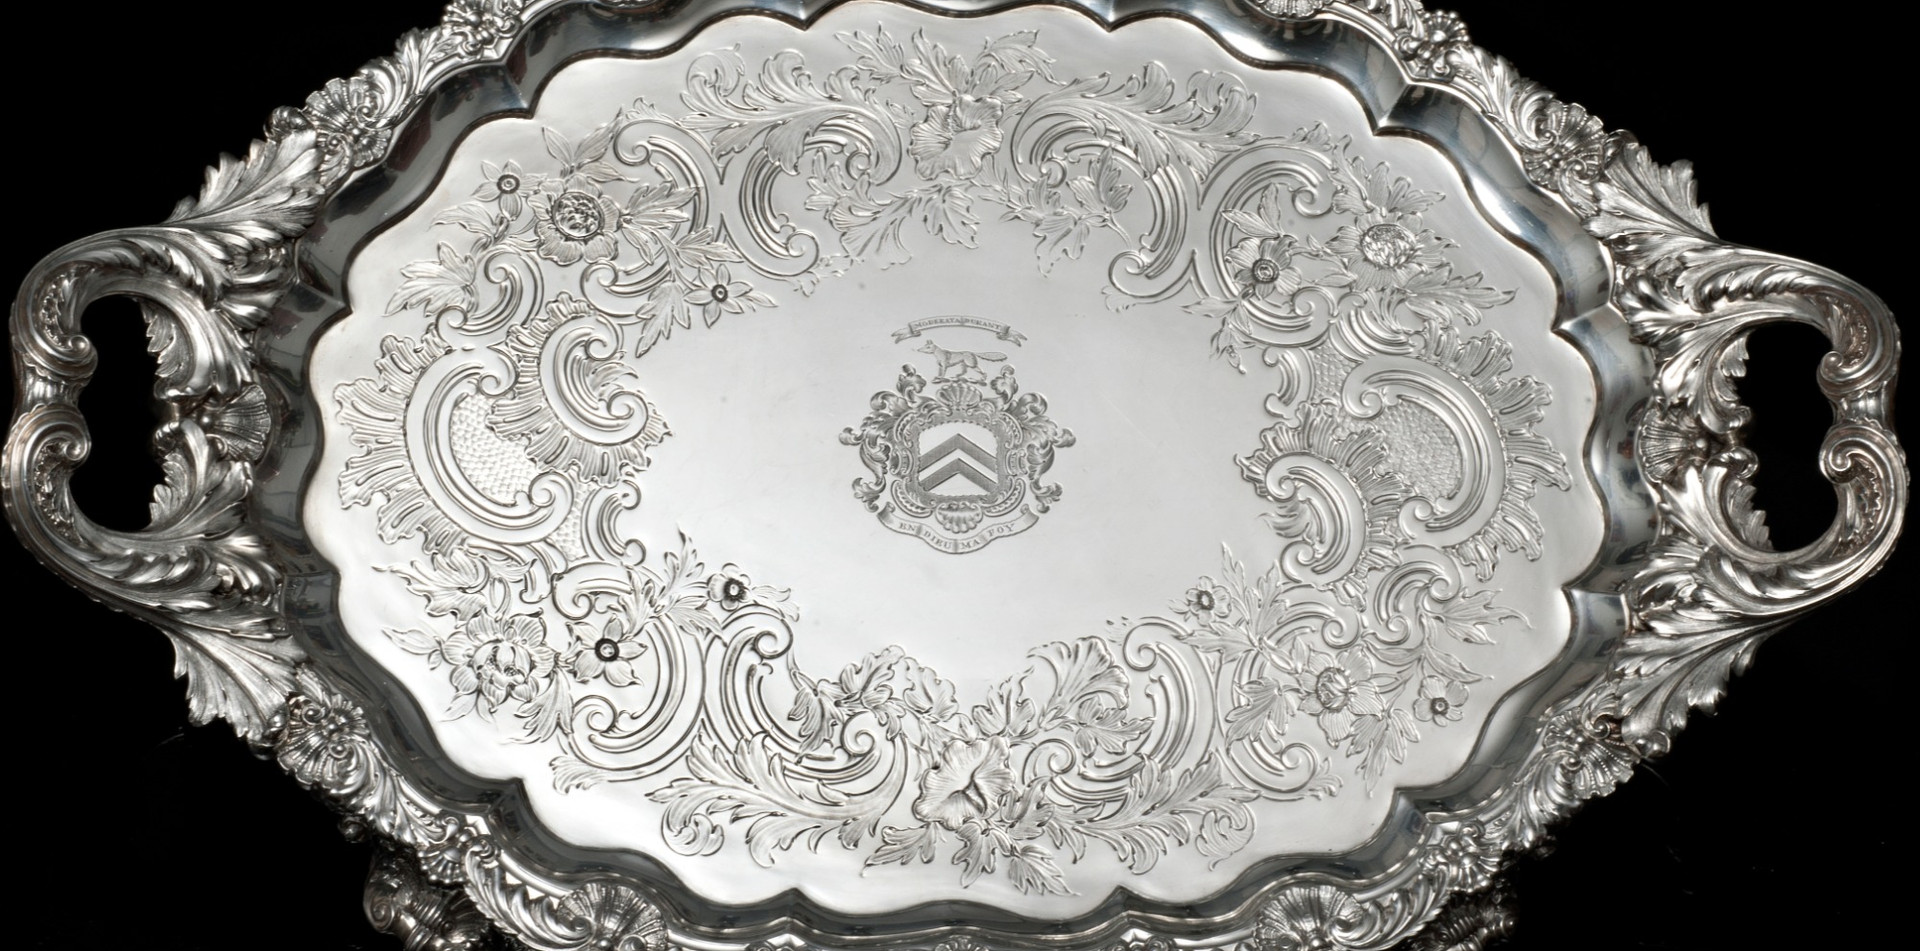 "Regency Tray by Paul Storr   Oval Two Handled Silver Tray Shell and foliage scroll border and handles.  Shell and grape feet. Contemporary flat chasing.   ""The exuberance of the feet and handles are a feature of Paul Storrs regency work.""   1818 112 oz 22 inches over handles Engraved with Staunton arms (running fox) and mottos: Moderata Durant - Moderate things are permeant En Dieu Est Ma Foy – On God is my Reliance £22,500.00"